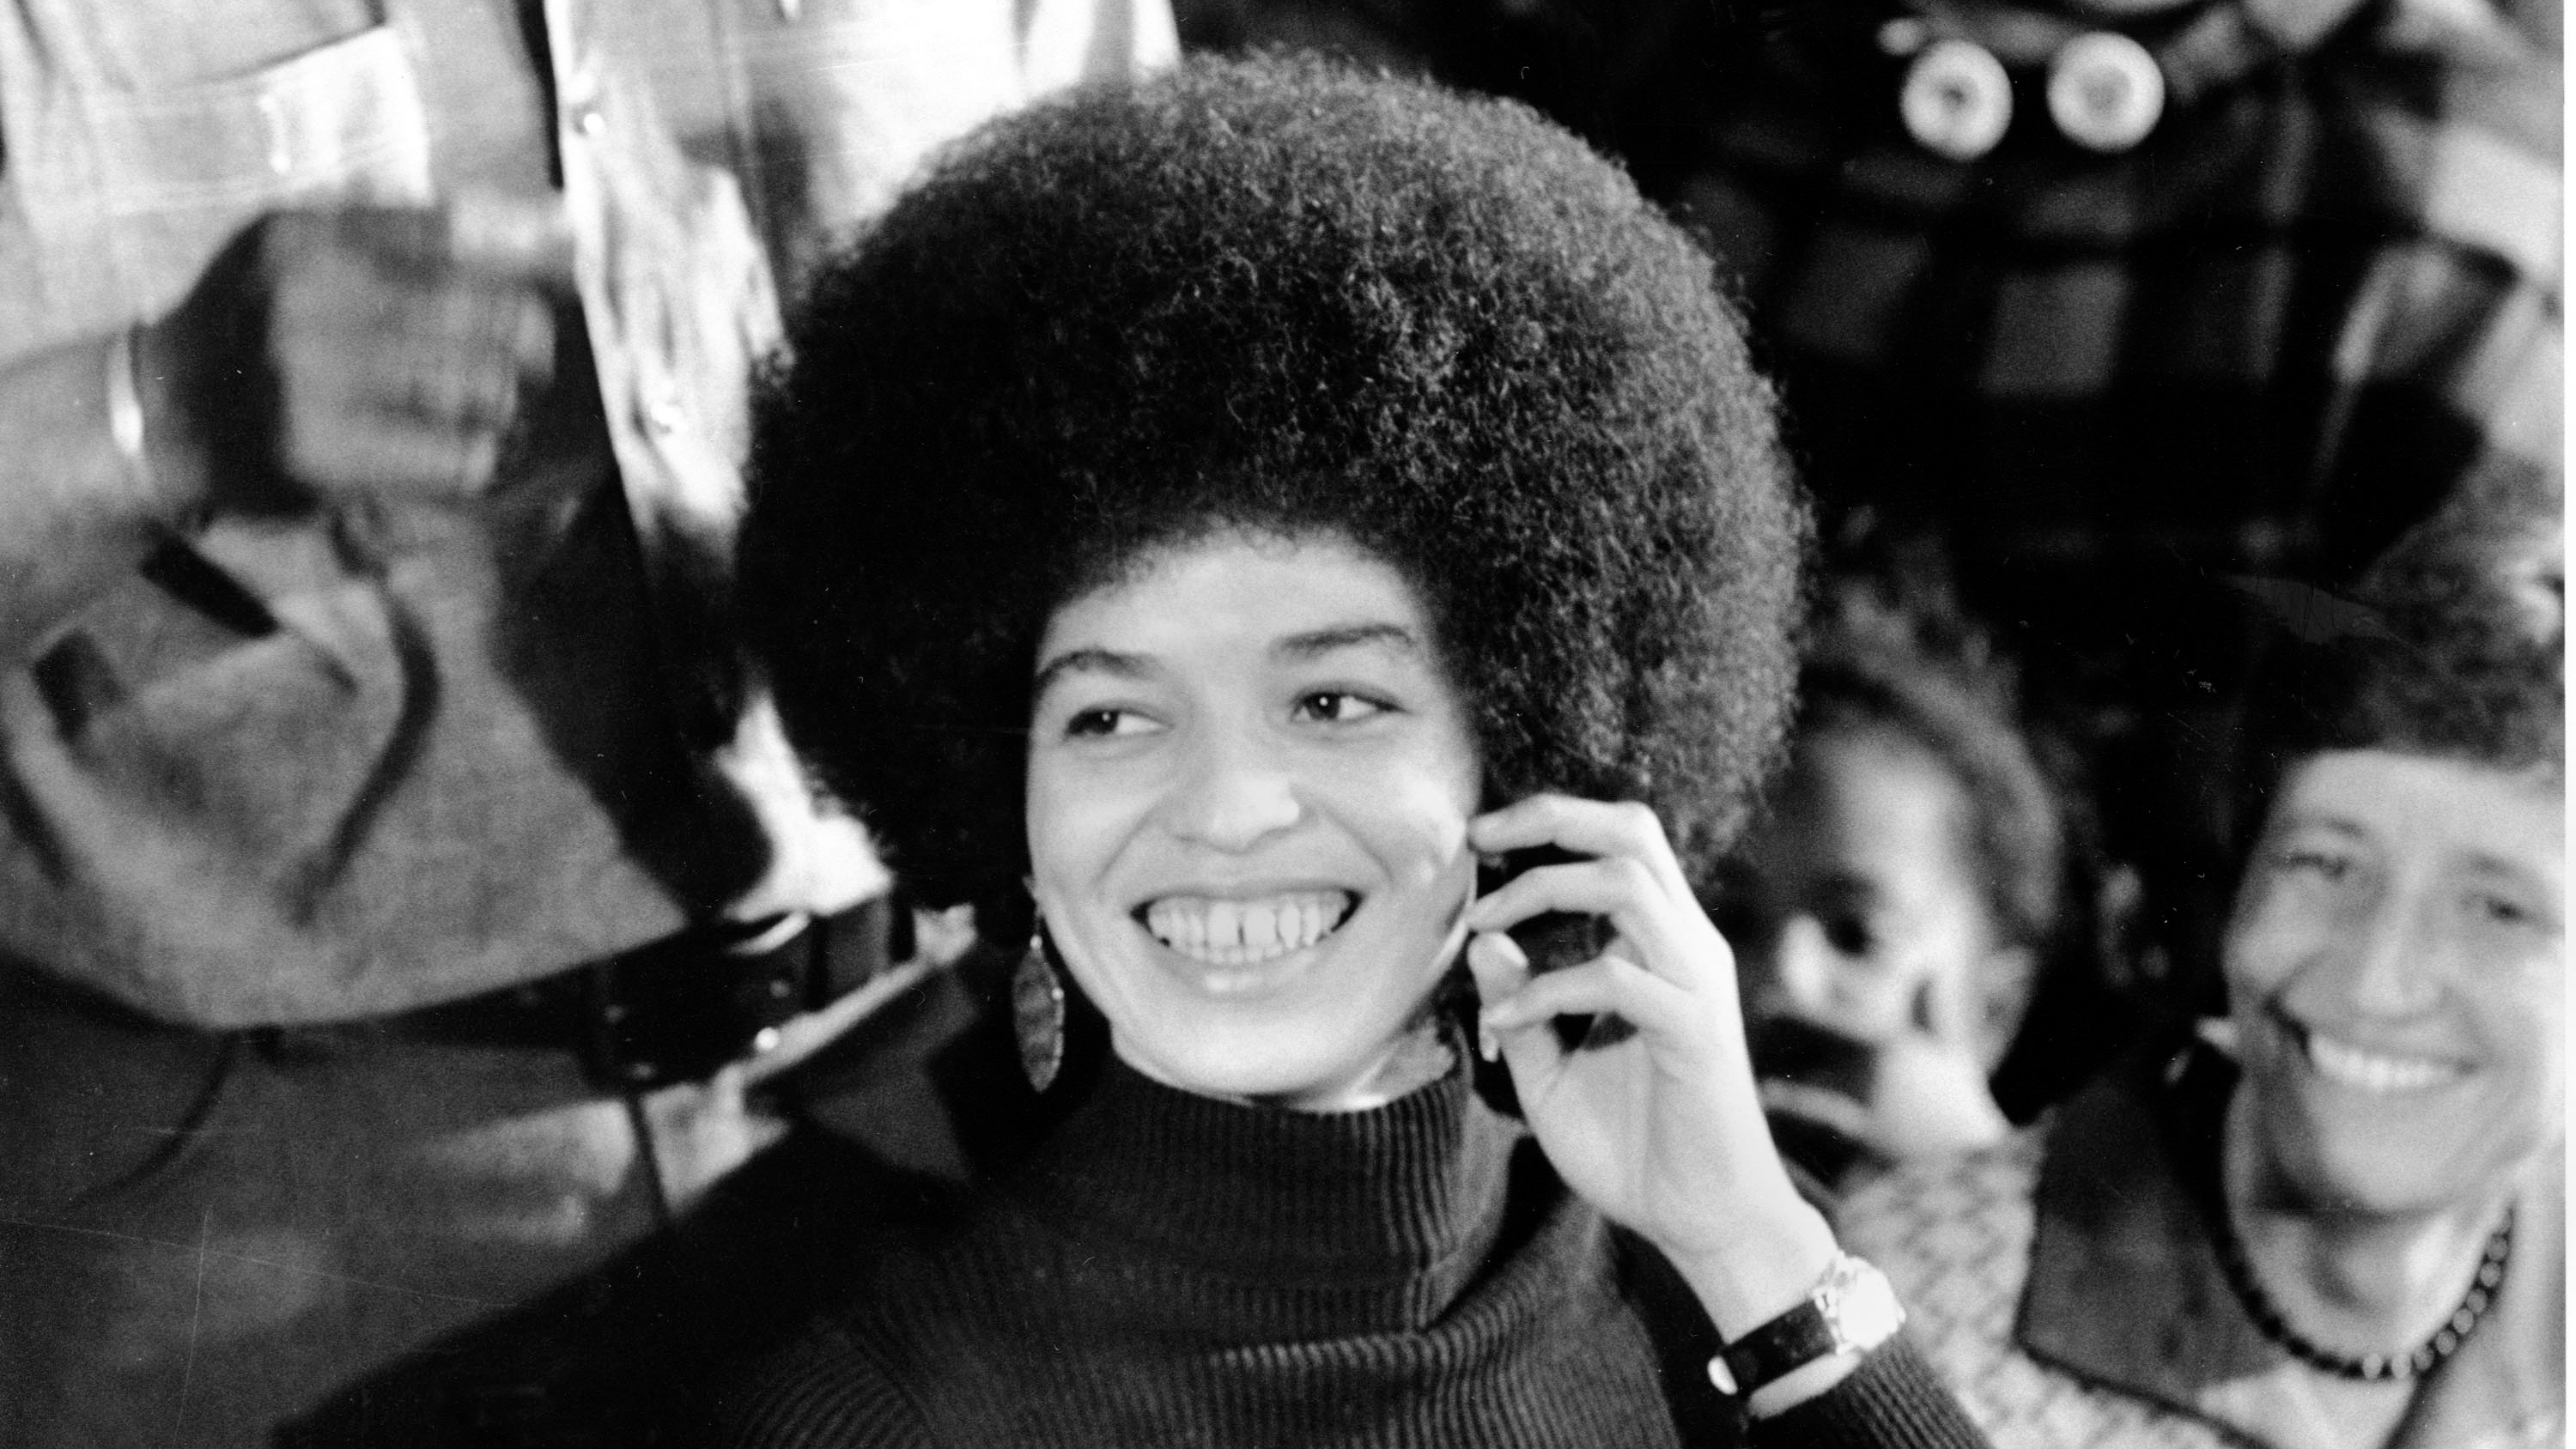 Angela Davis, the self-acclaimed communist and revolutionary, smiles at a news conference in her San Jose headquarters on Feb. 25, 1972, a day after she is released on $102,500 bail. Davis, who is to begin trial on murder, conspiracy and kidnap charges, has been in jail for 16 months after her arrest in connection with the escape attempt at Marin County Courthouse shoot-out in August, 1970.